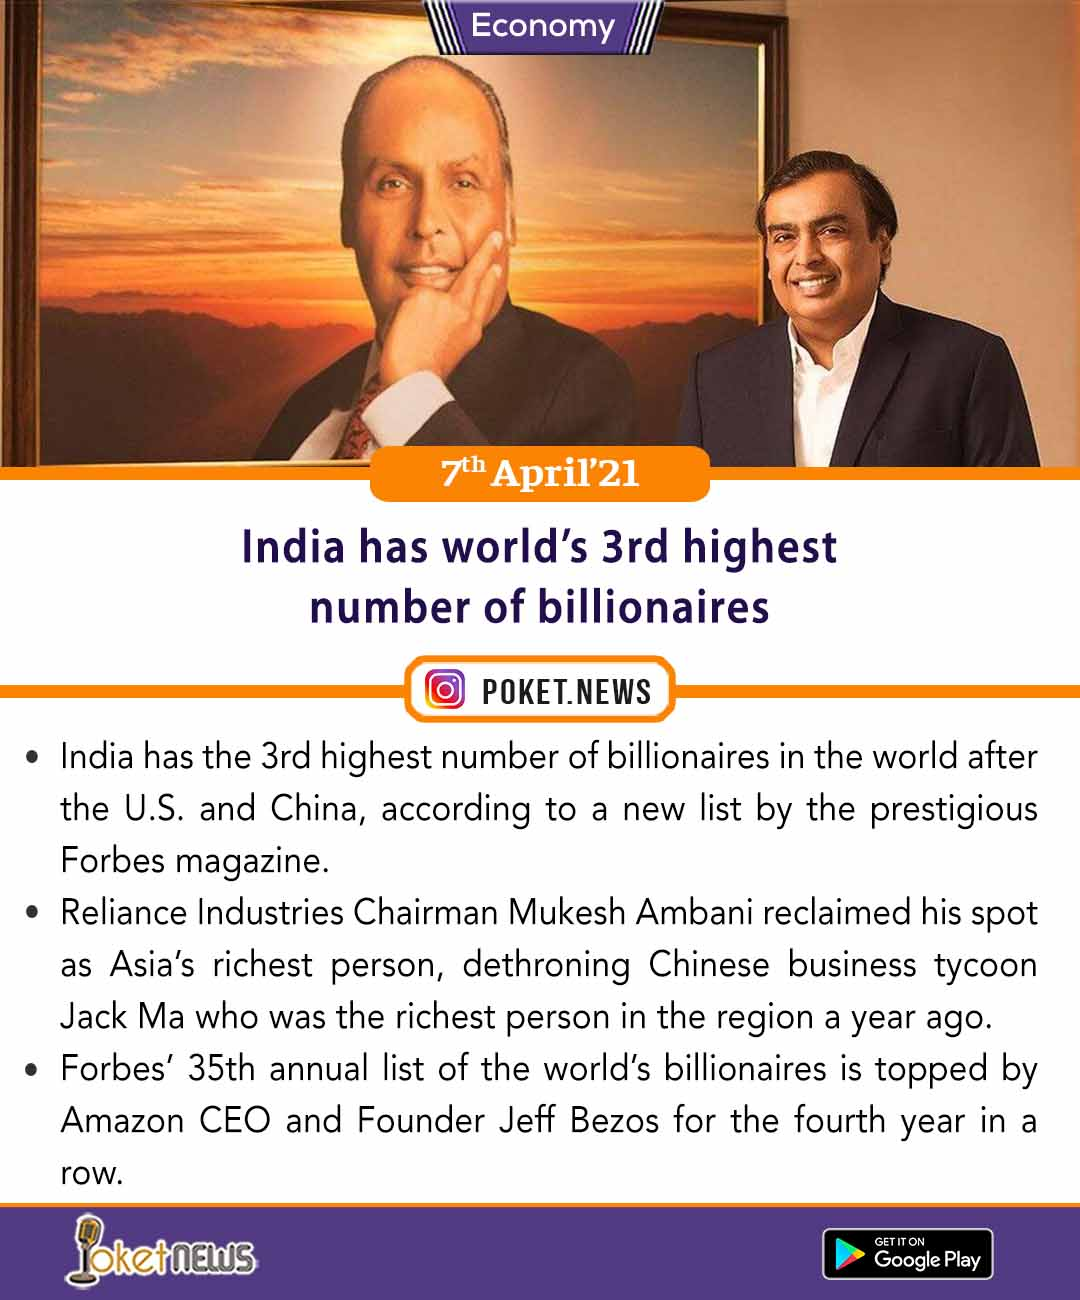 India has world's 3rd highest number of billionaires